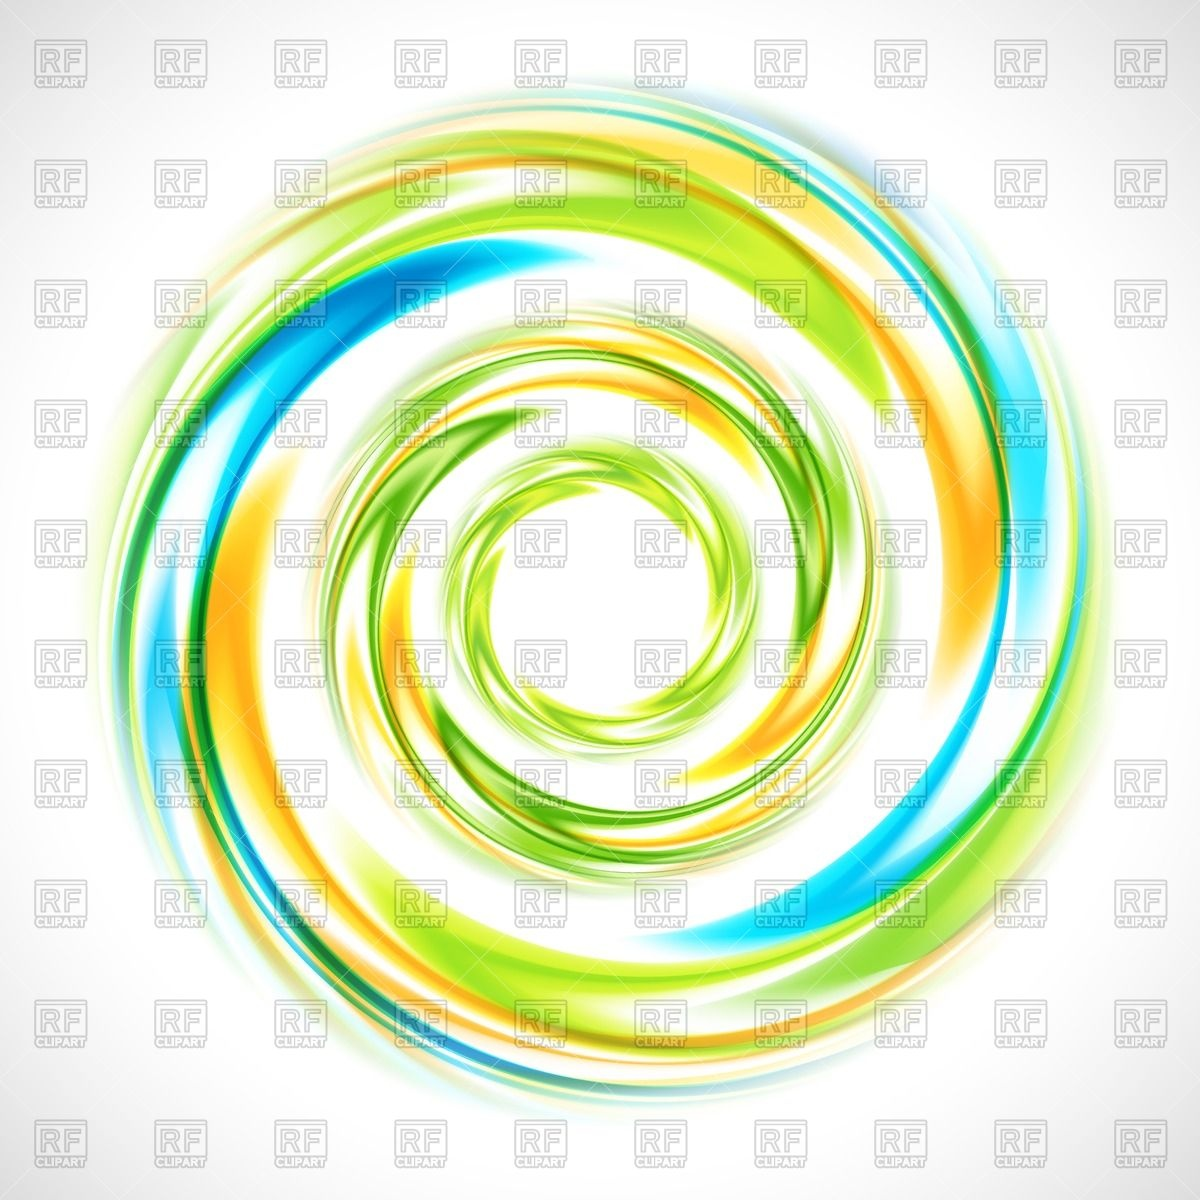 1200x1200 Abstract Green, Blue And Yellow Swirl Circle Royalty Free Vector